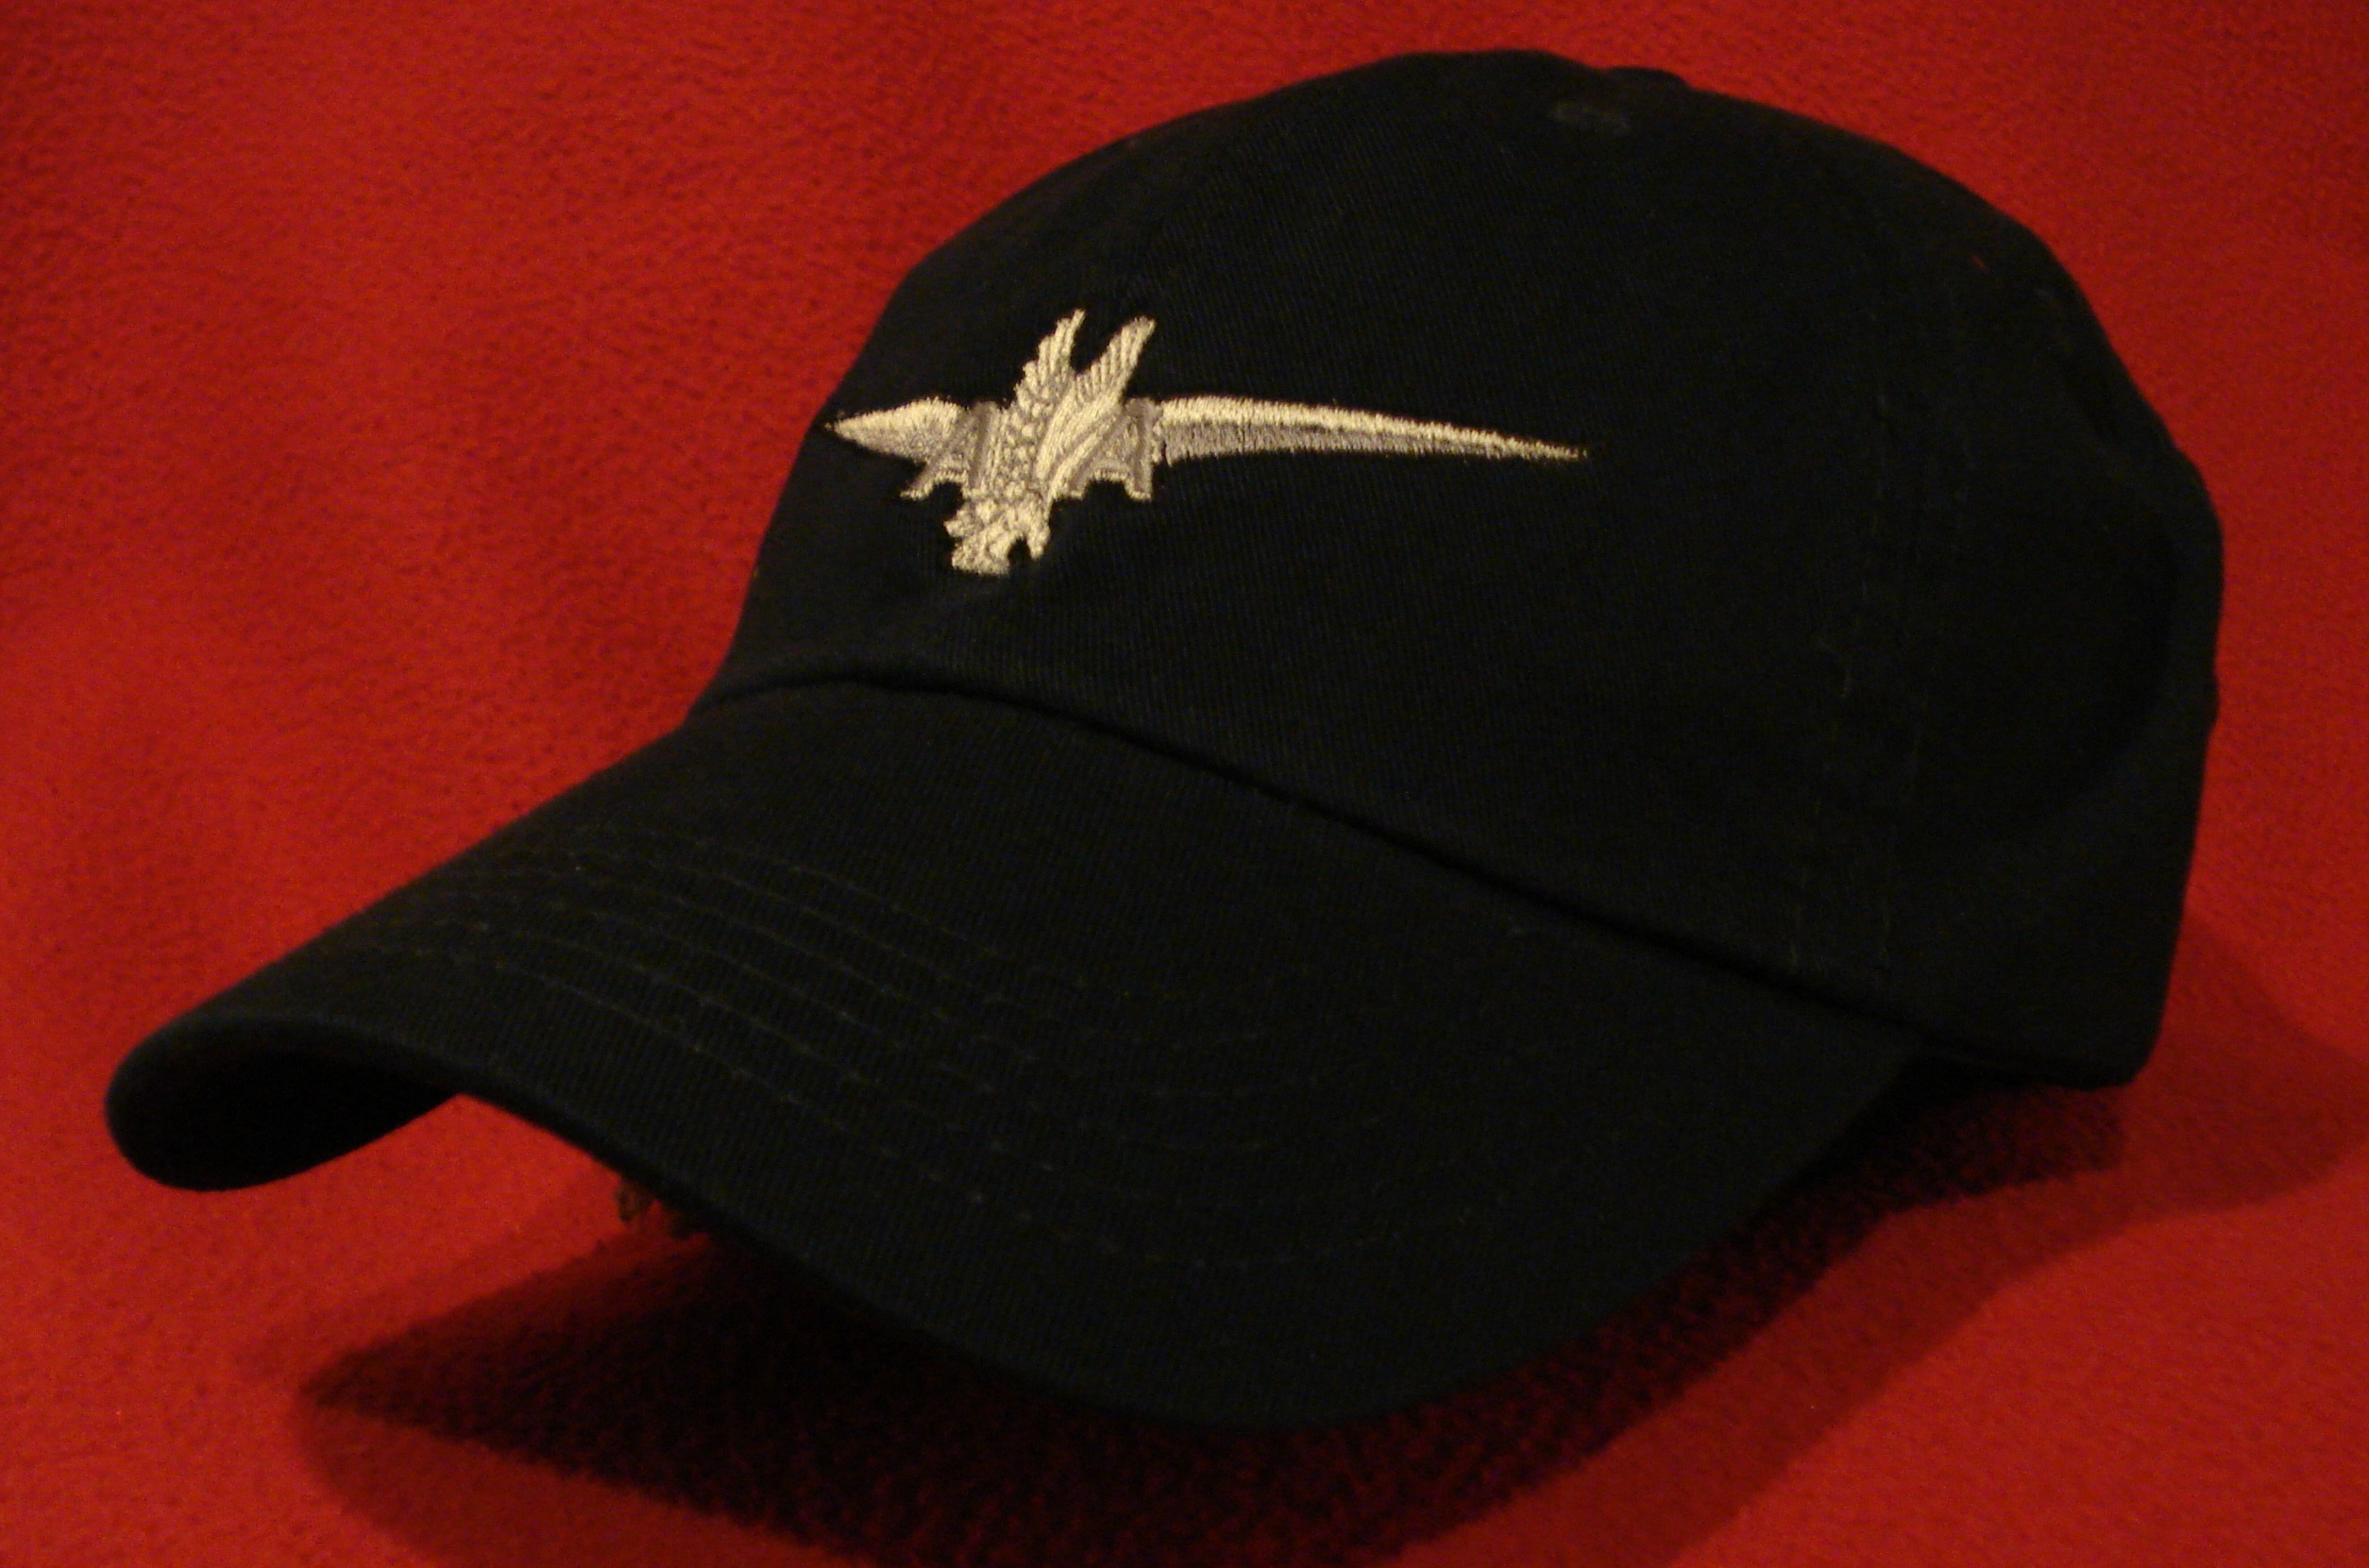 Airline Pilot   Flight Crew wings hats by Pilot Ball Caps e023bb1a4fea